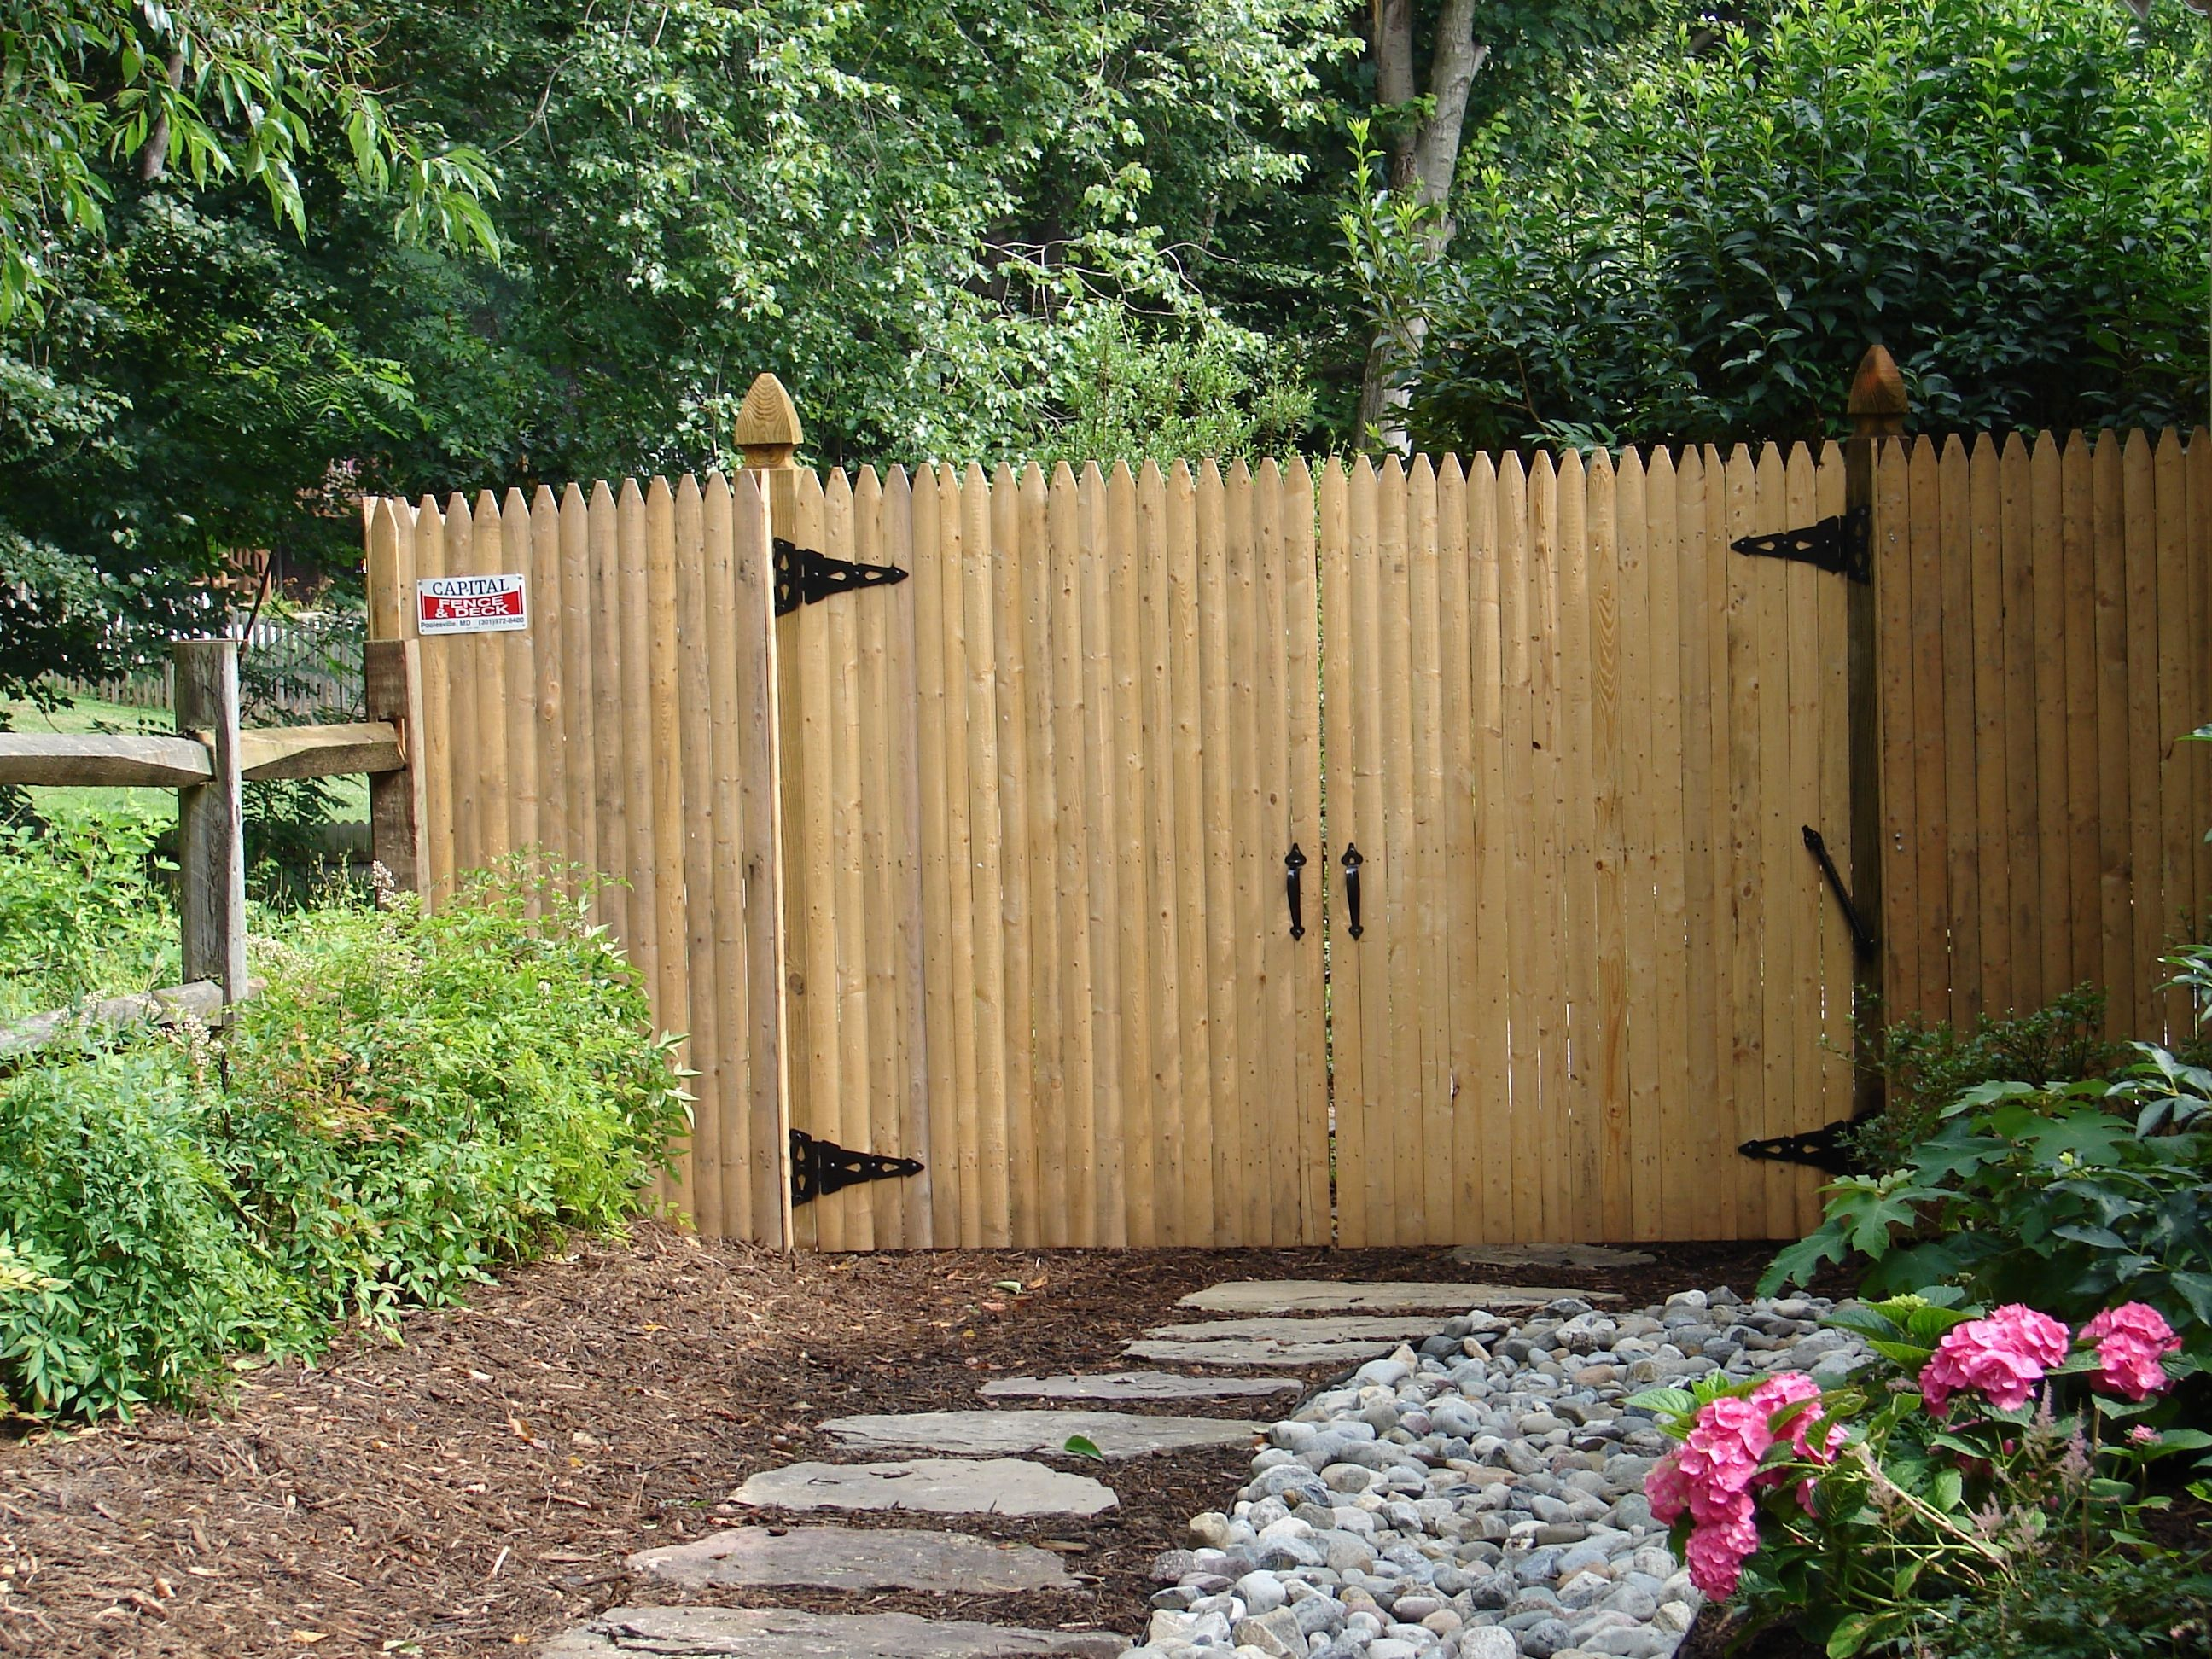 6 Foot Wood Privacy Fence Stockade Style With Double Gates Fence Landscaping Backyard Fences Natural Fence